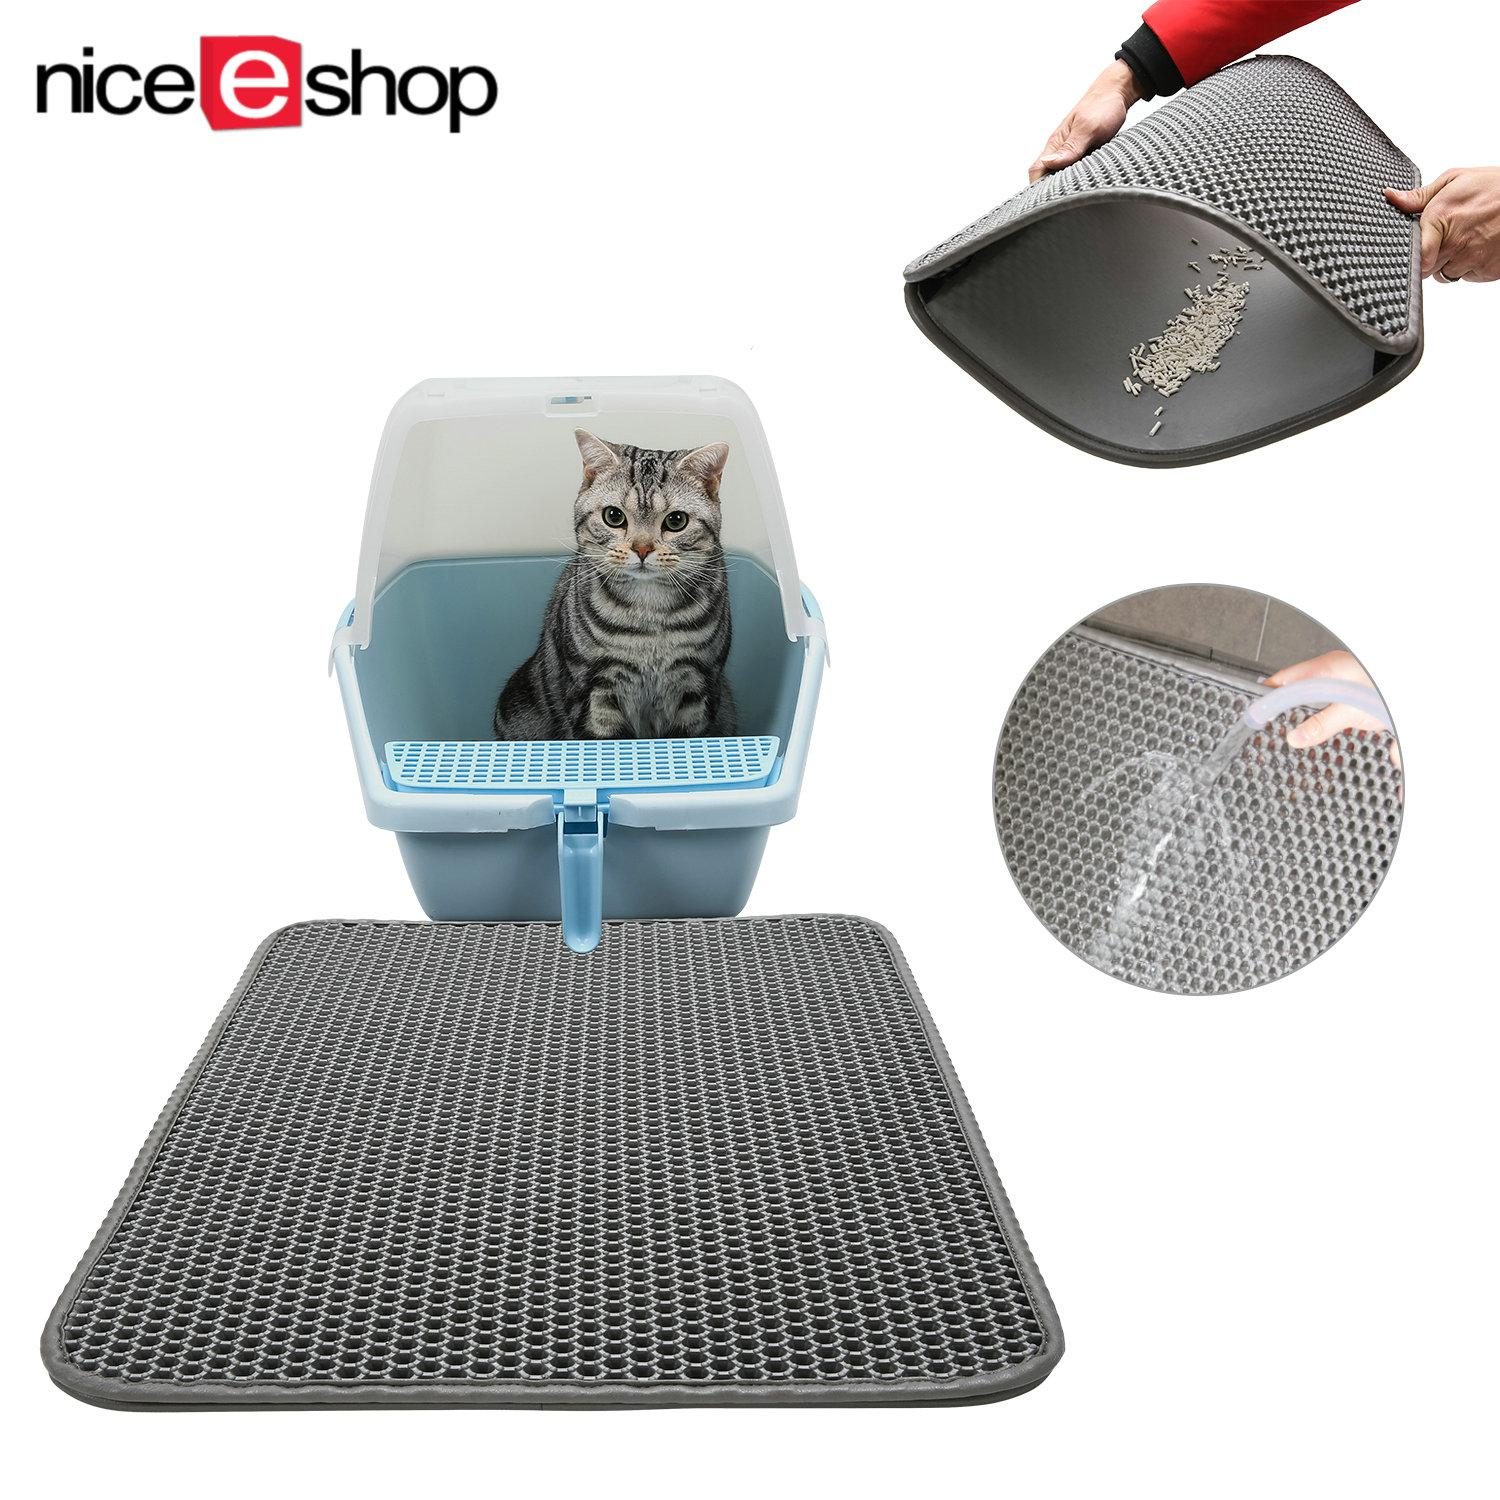 Niceeshop Waterproof Cat Litter Mat Double Layer Honeycomb Cat Feeding Mat Litter Trapping Size 40X50Cm Intl Promo Code